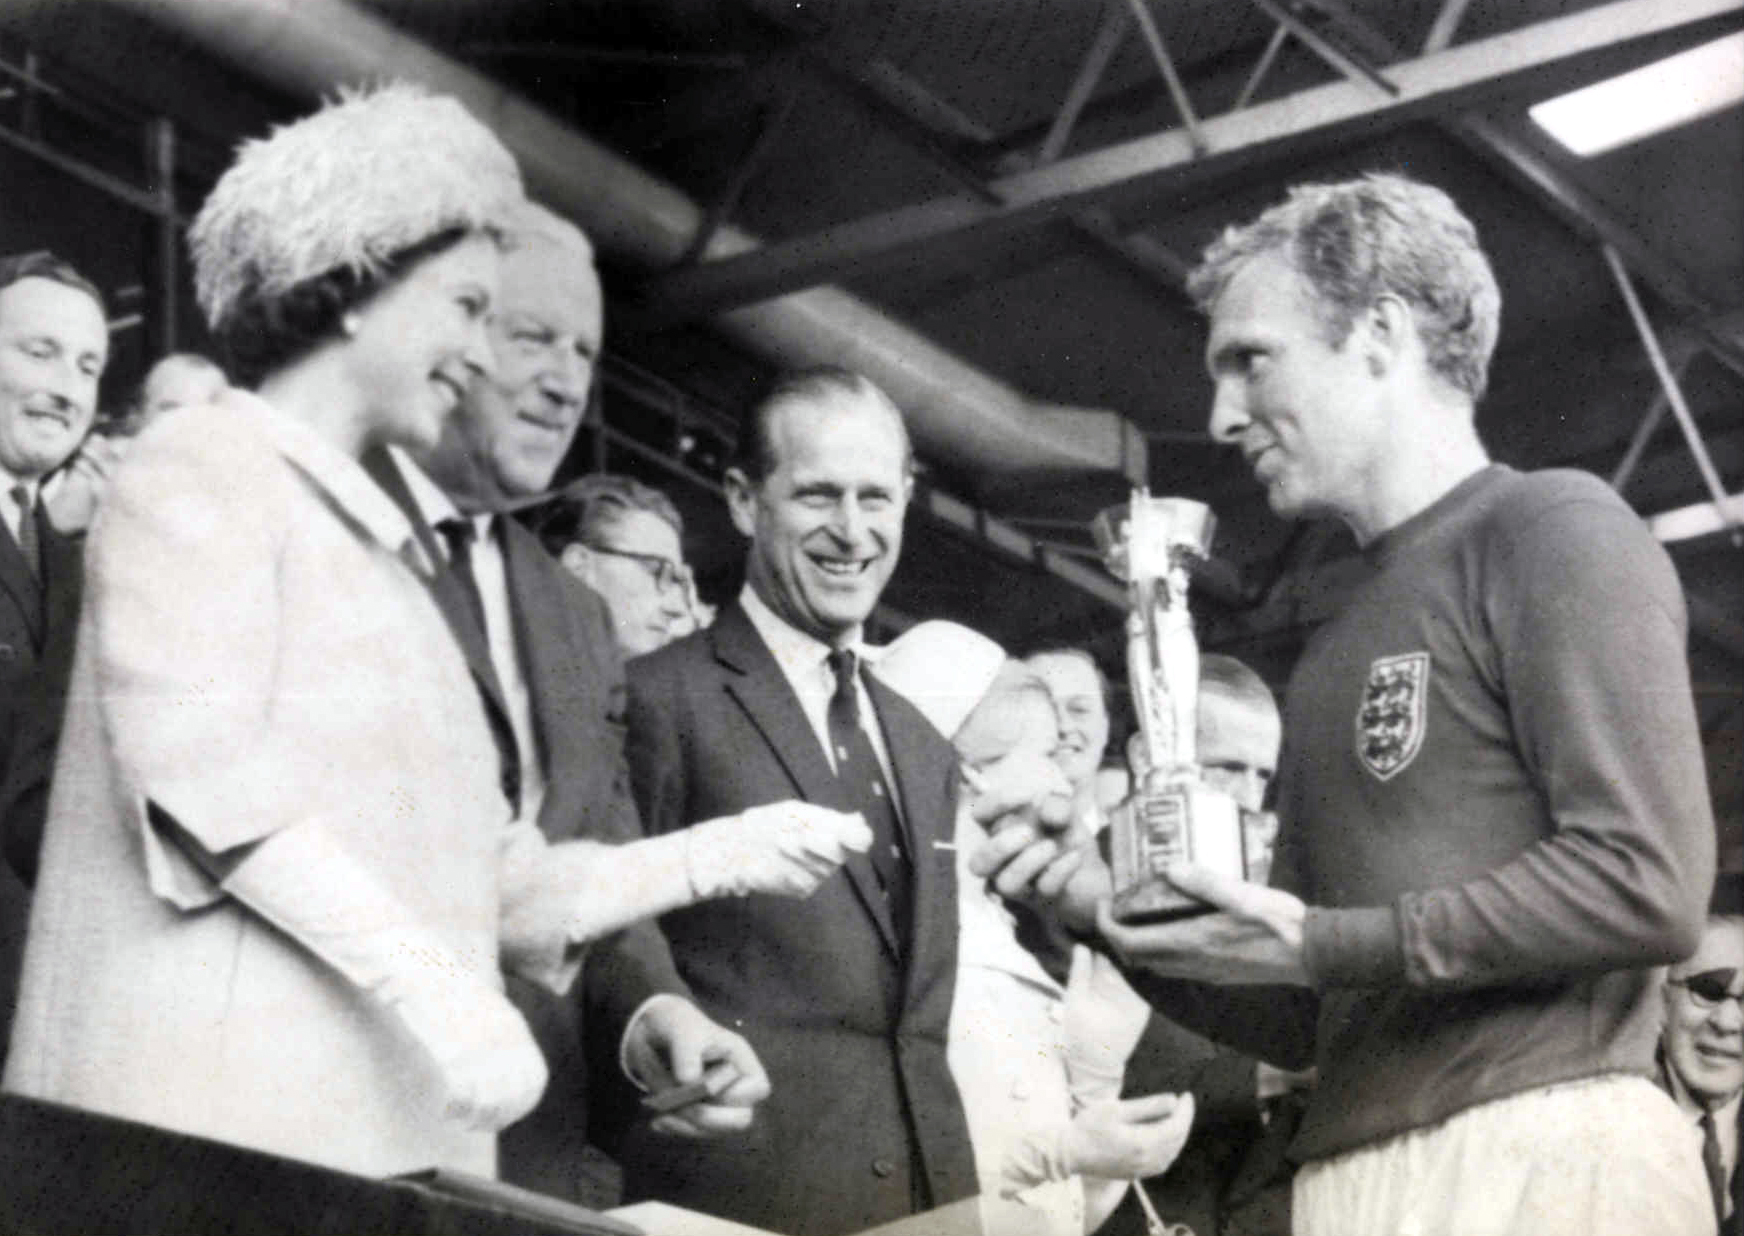 The_Queen_presents_the_1966_World_Cup_to_England_Captain,_Bobby_Moore._(7936243534).jpg